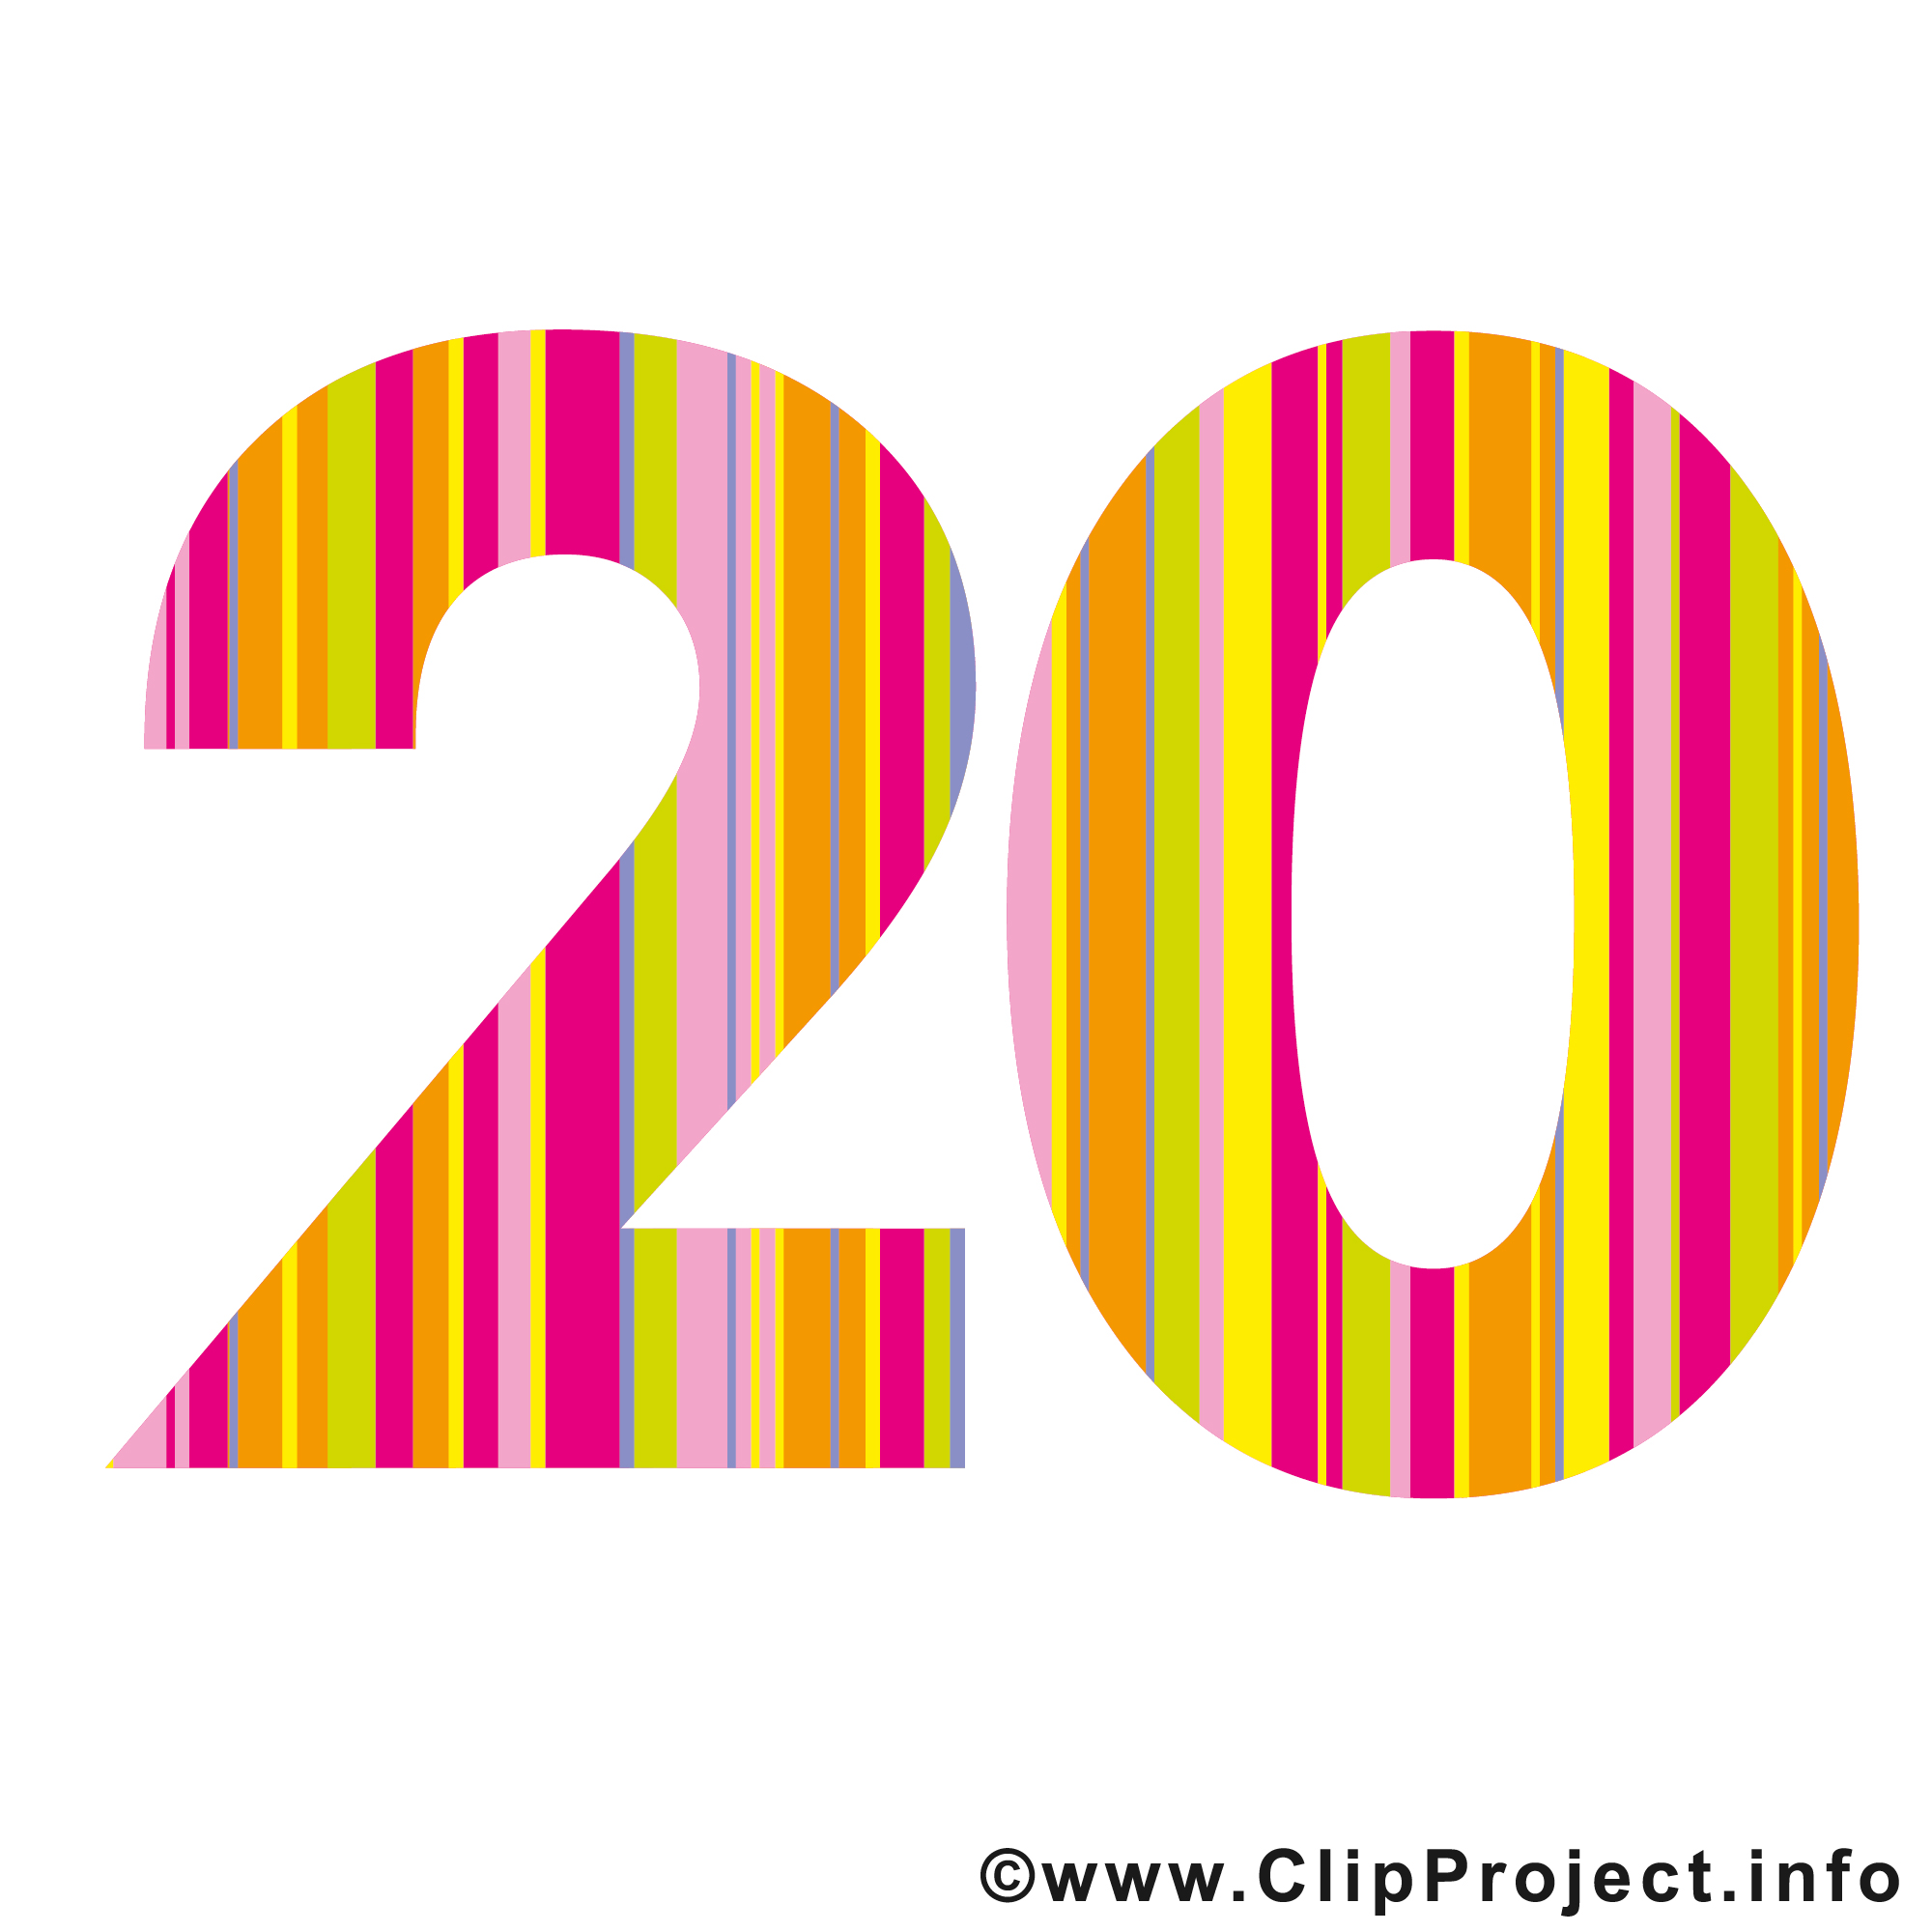 Number 20 clipart clip freeuse stock 20 clip art - ClipartFest clip freeuse stock